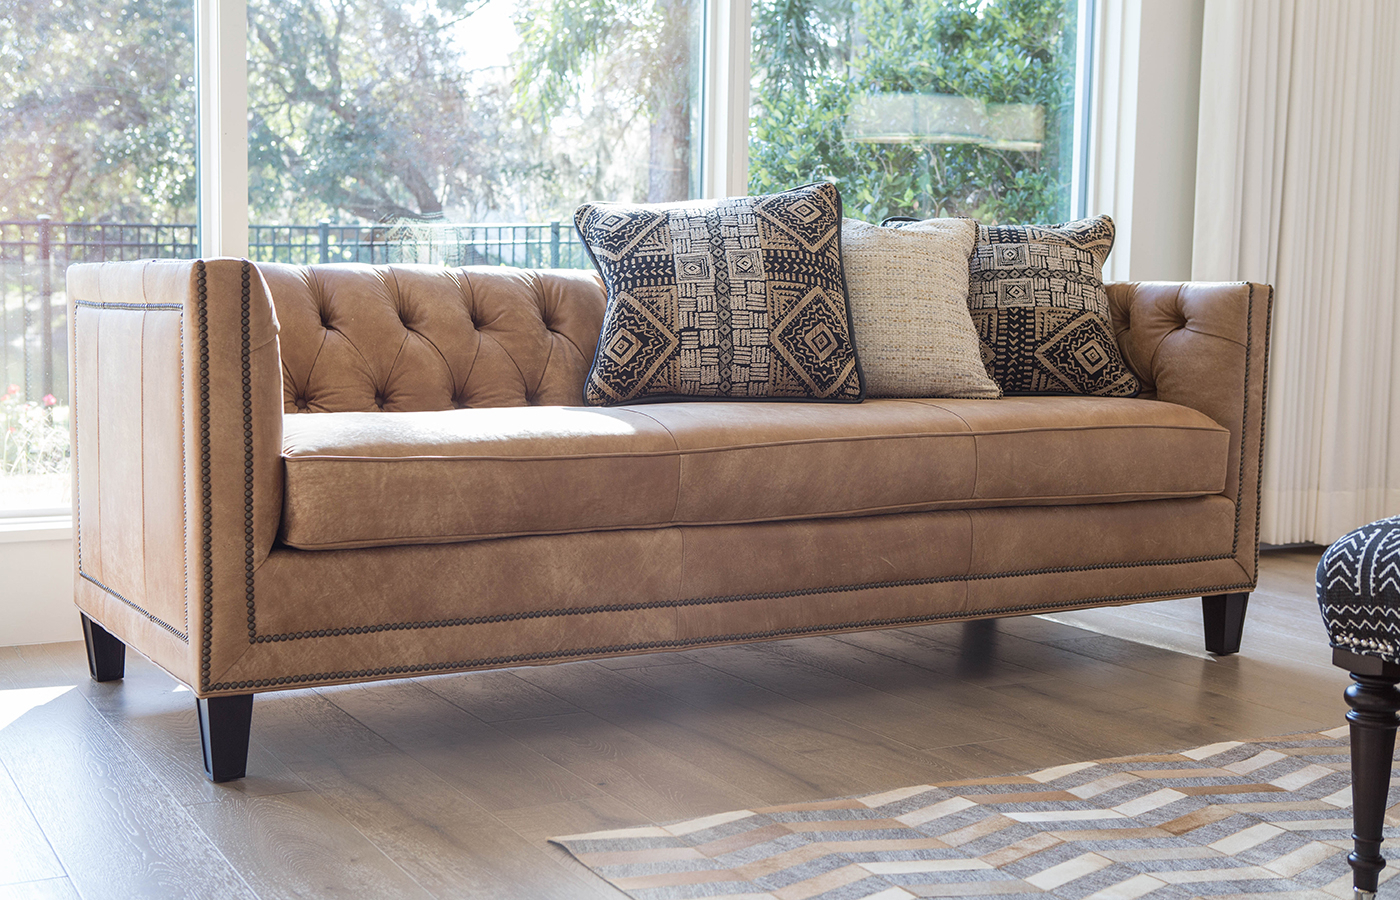 Latest Norwalk Sofa And Chairs Intended For Norwalk Furniture (Gallery 11 of 20)